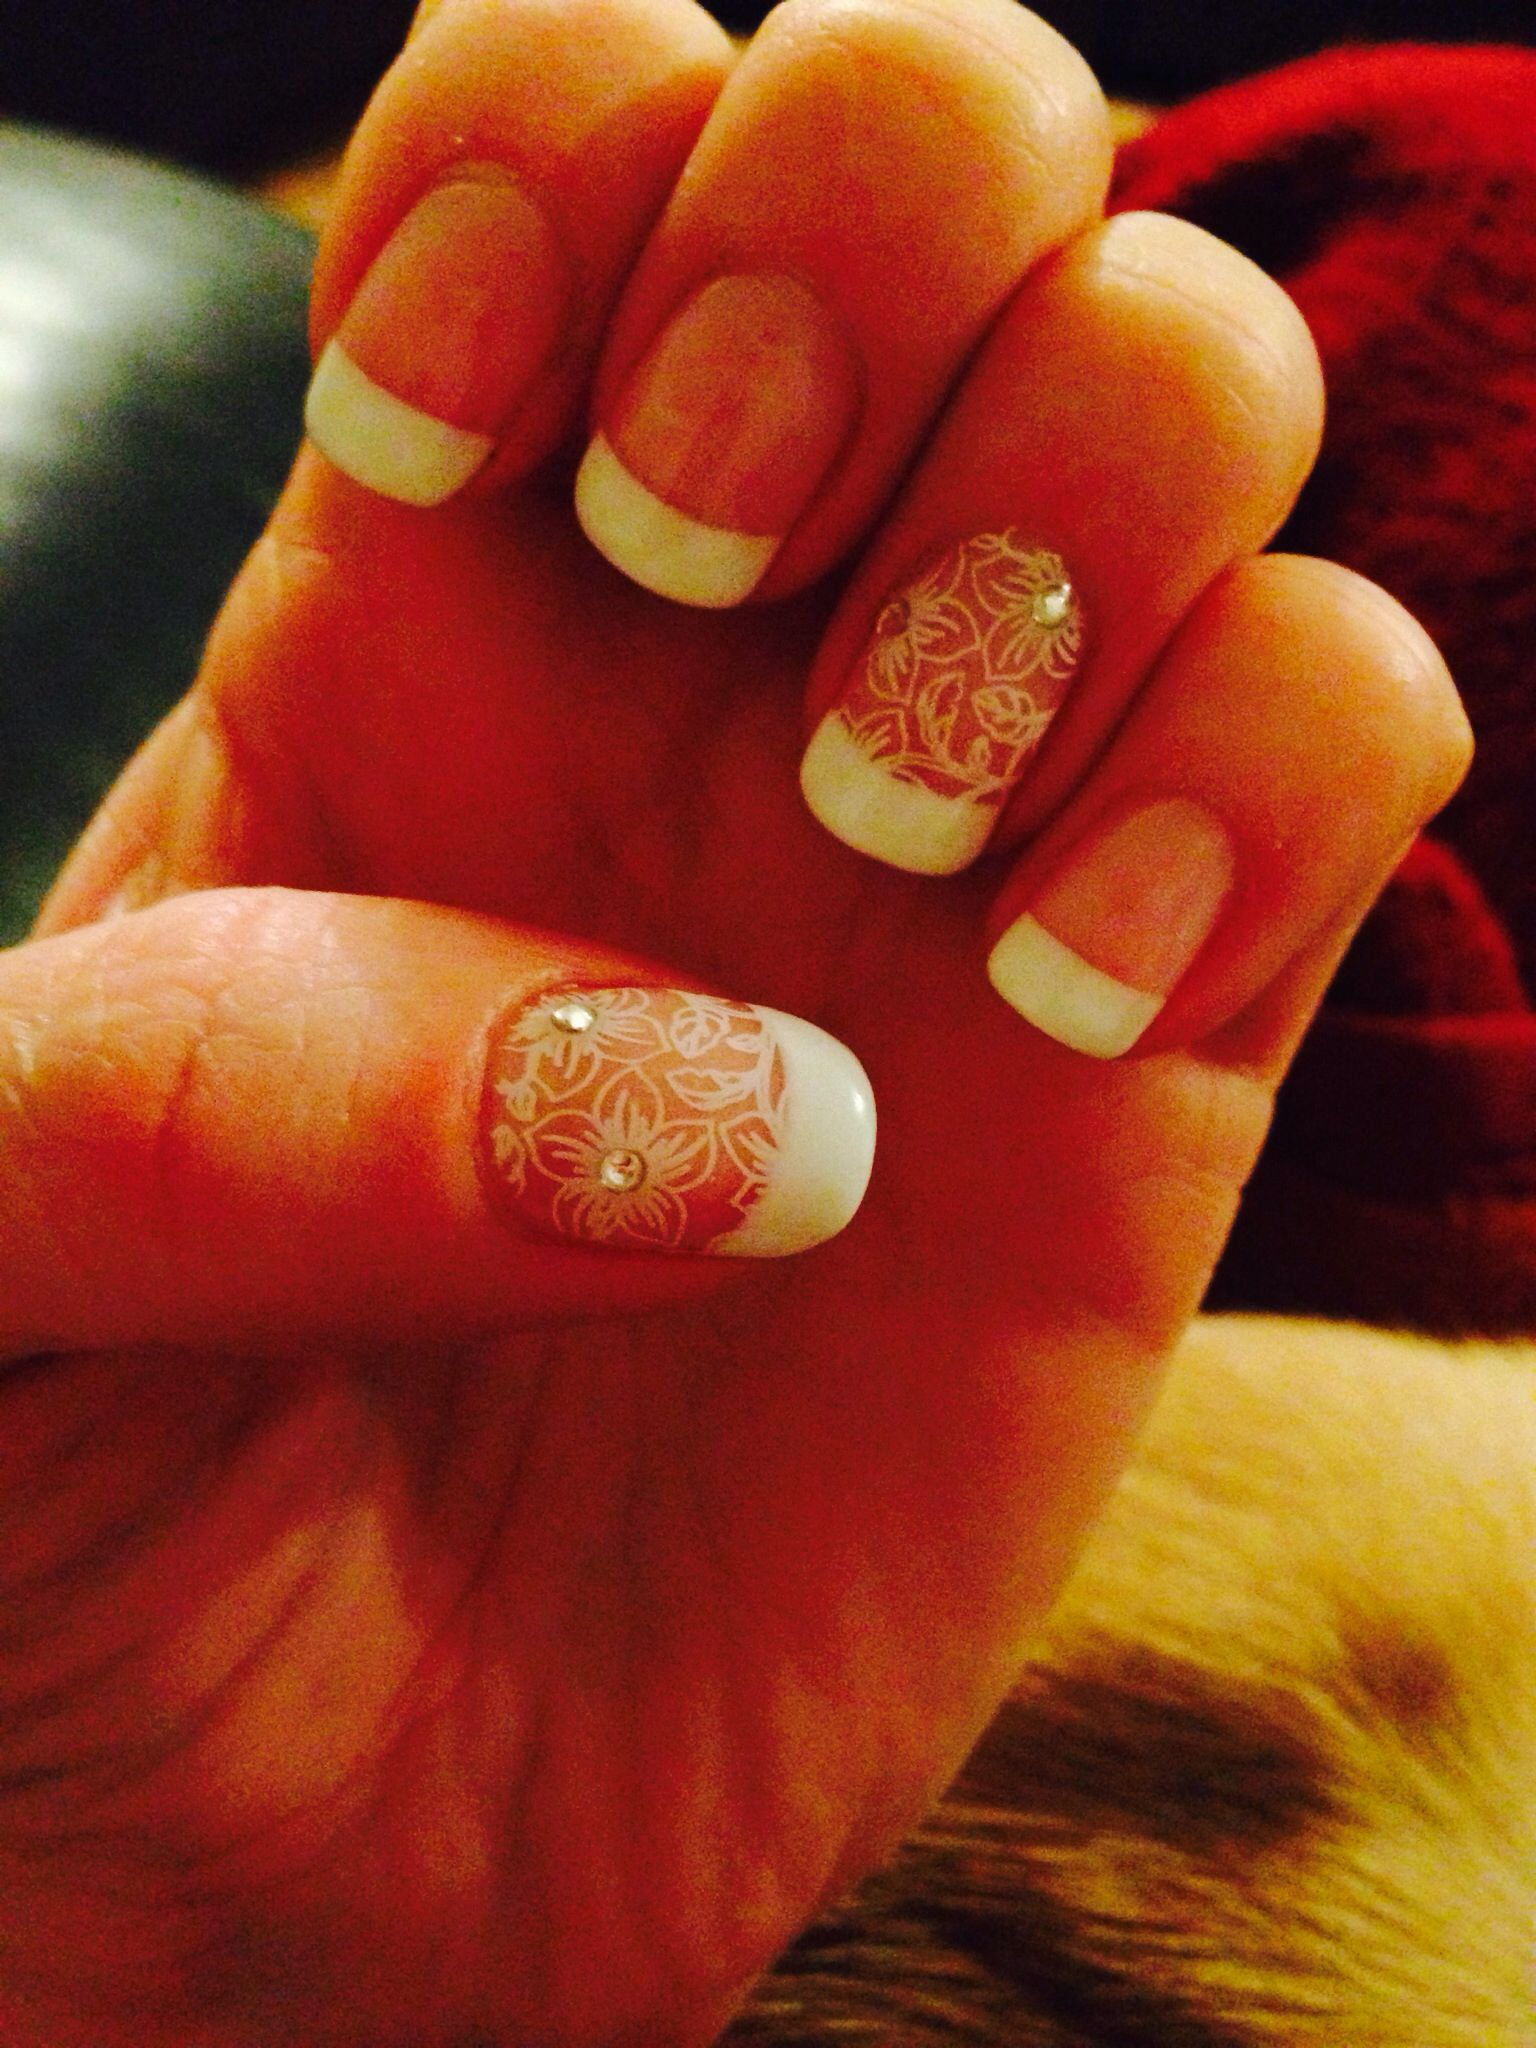 Nails Done By Sarah At The Nail Den Chesterfield I Love Them X Nails How To Do Nails My Love